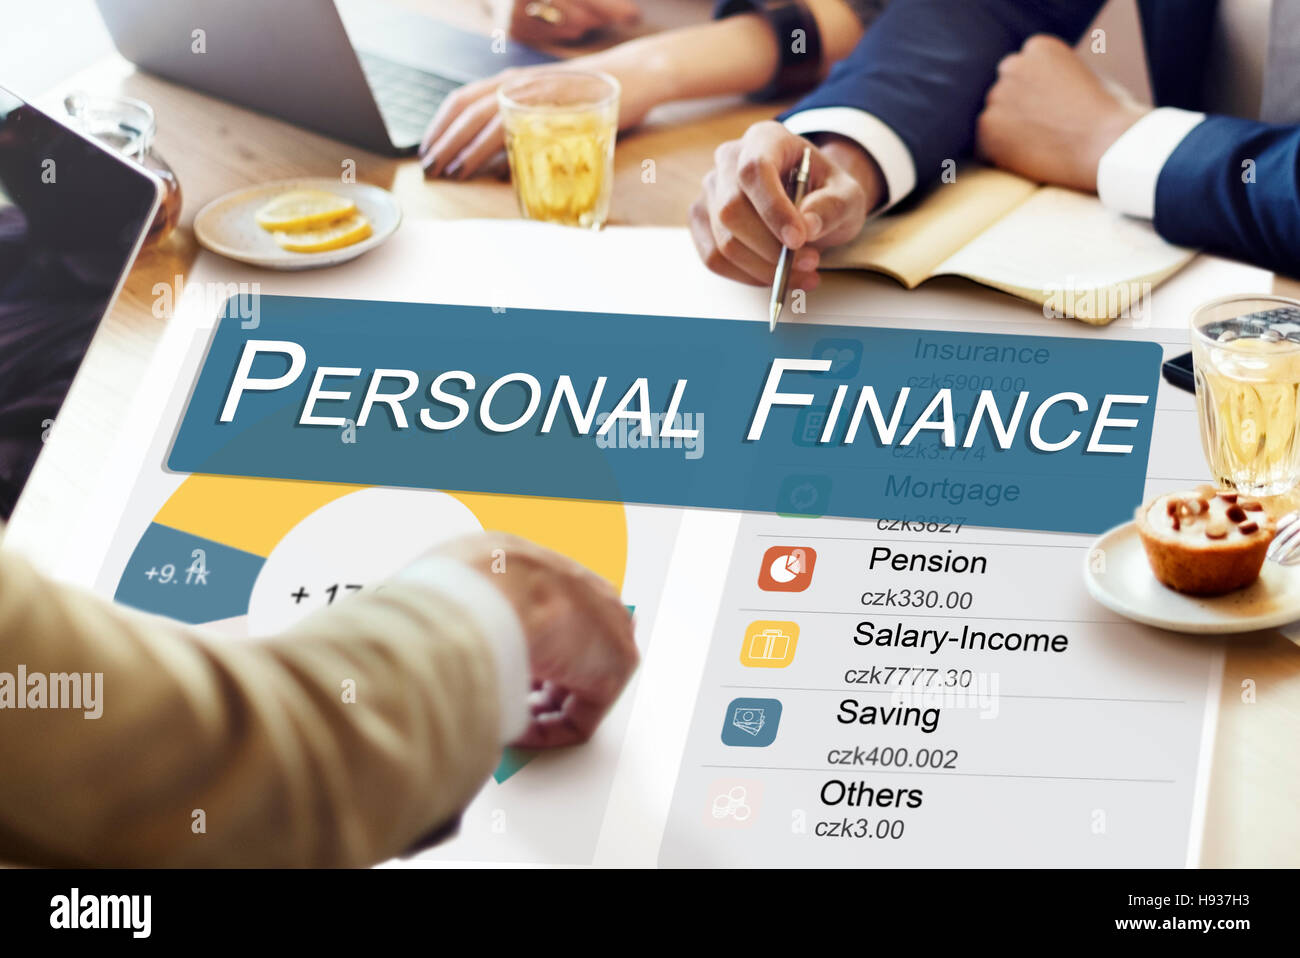 Personal Finance Information Balance Privacy Concept - Stock Image